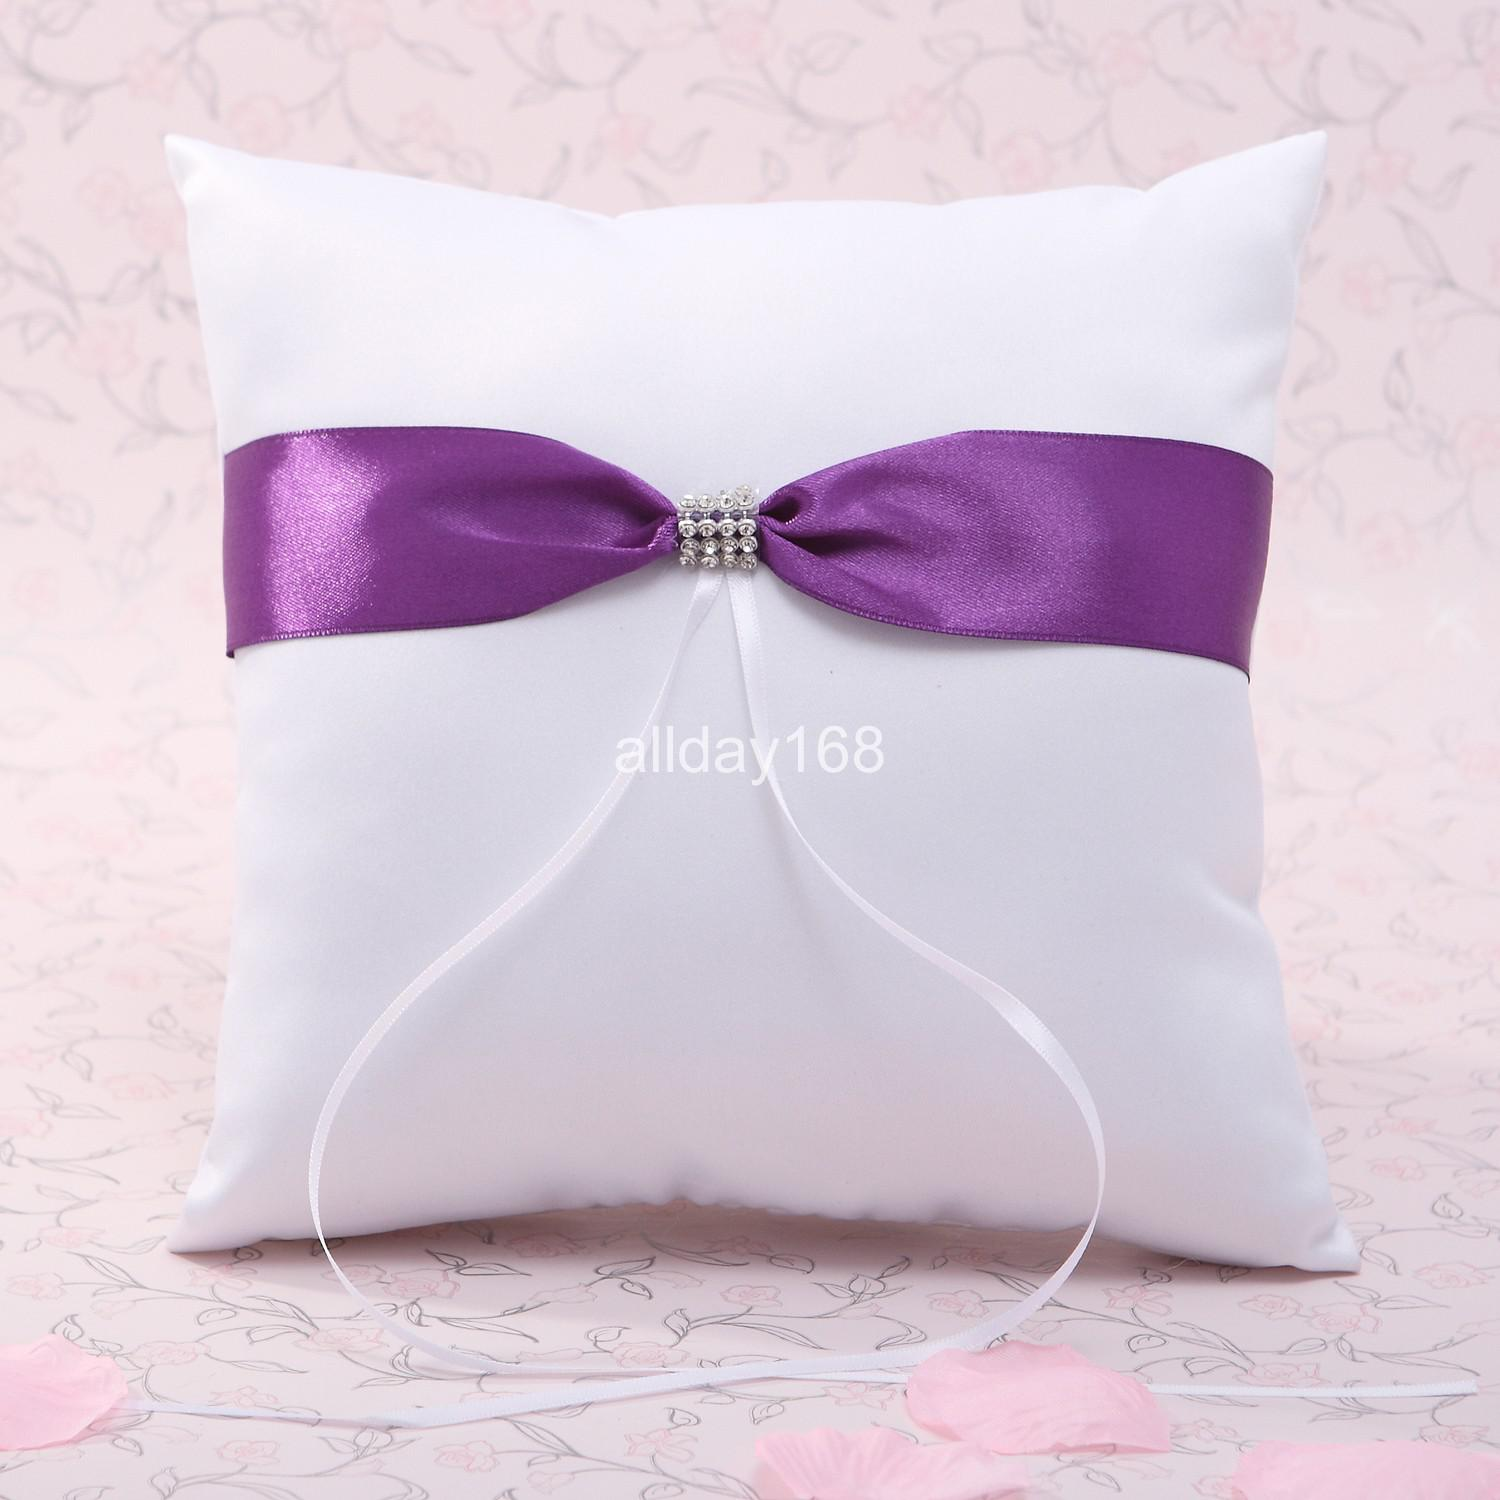 2018 Top Quality Wedding Ring Pillow Unique Supplies Purple Satin Design Ribbon For Ceremony Party From Allday168